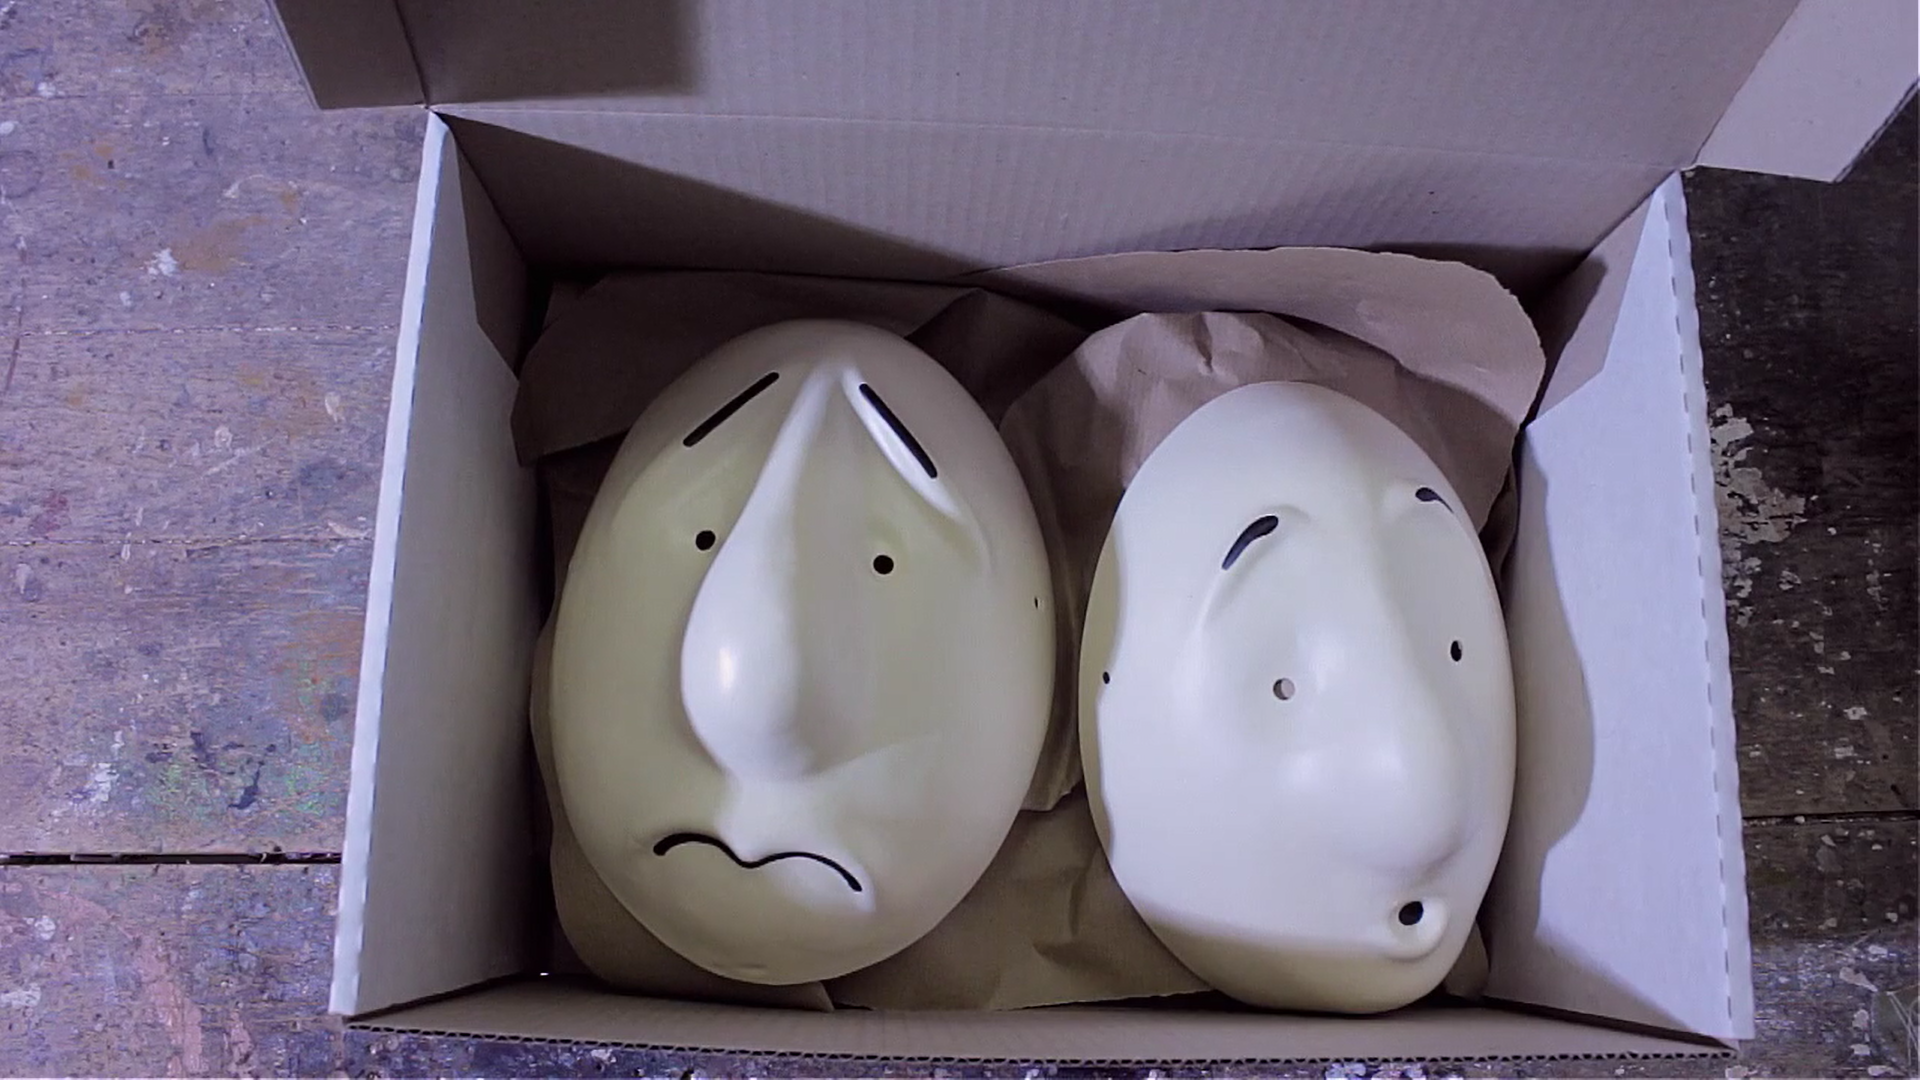 11)  Once all eight masks of the basic set are made, we package them up safely in a Trestle box along with elastic, foam pads.